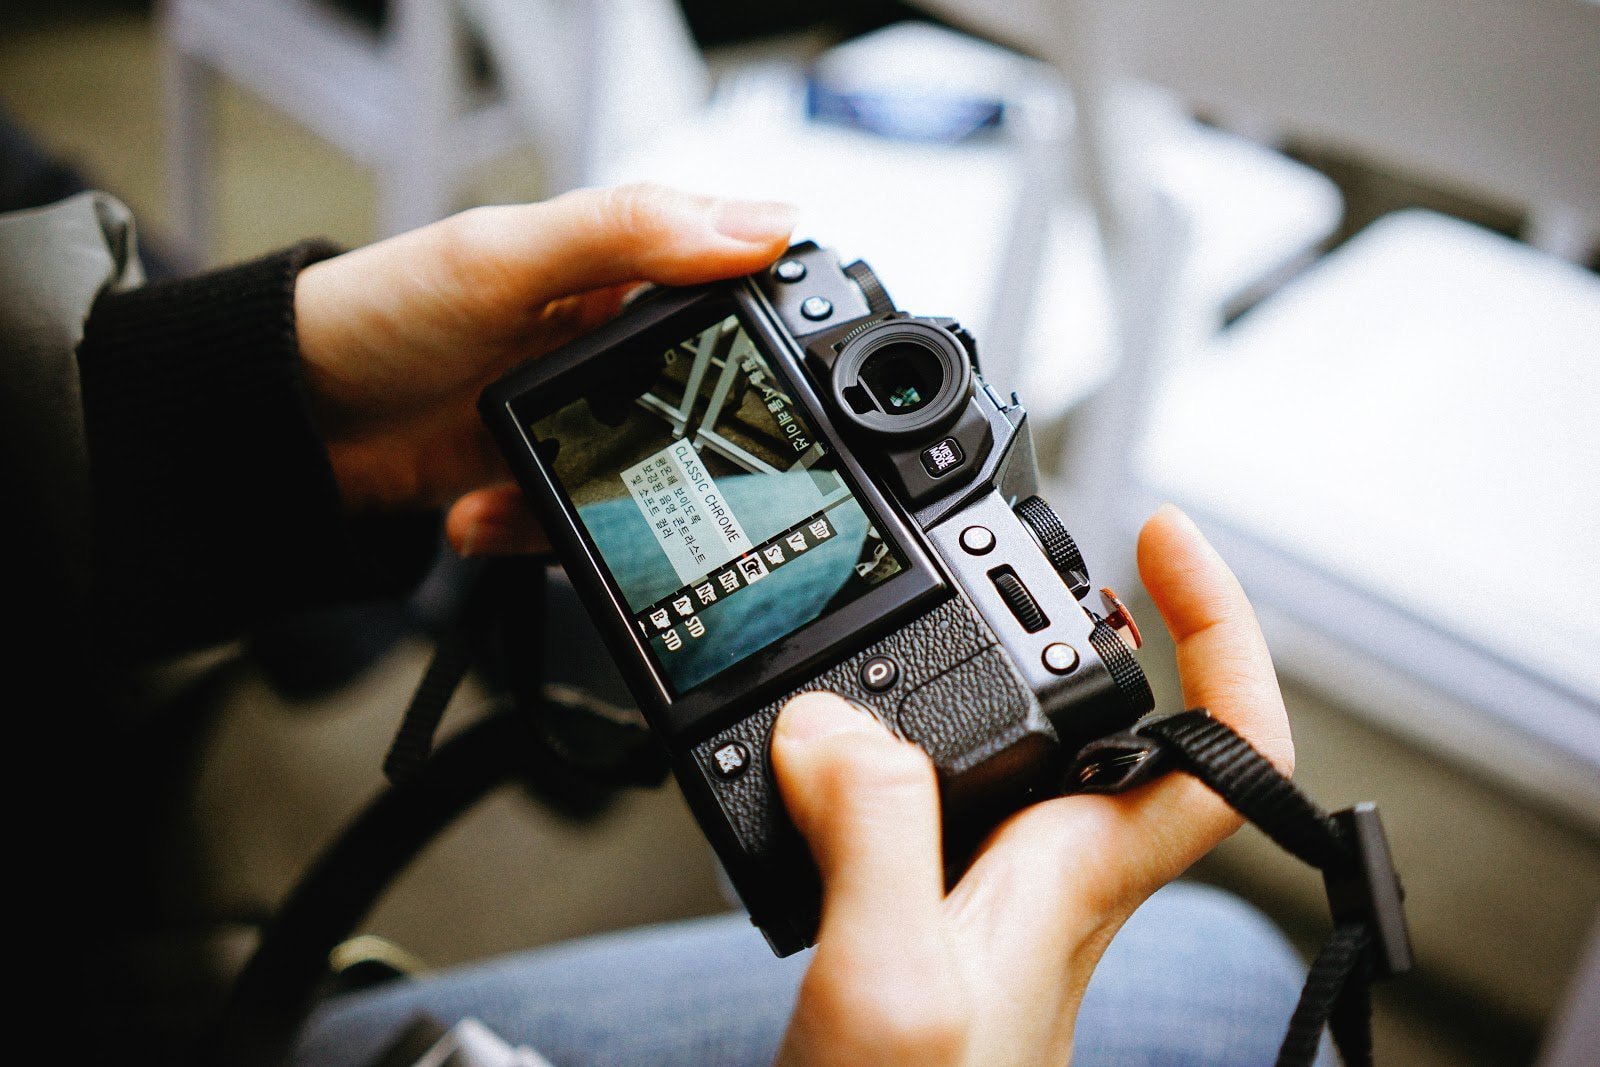 Person holding a camera adjusting its settings by Manki Kim